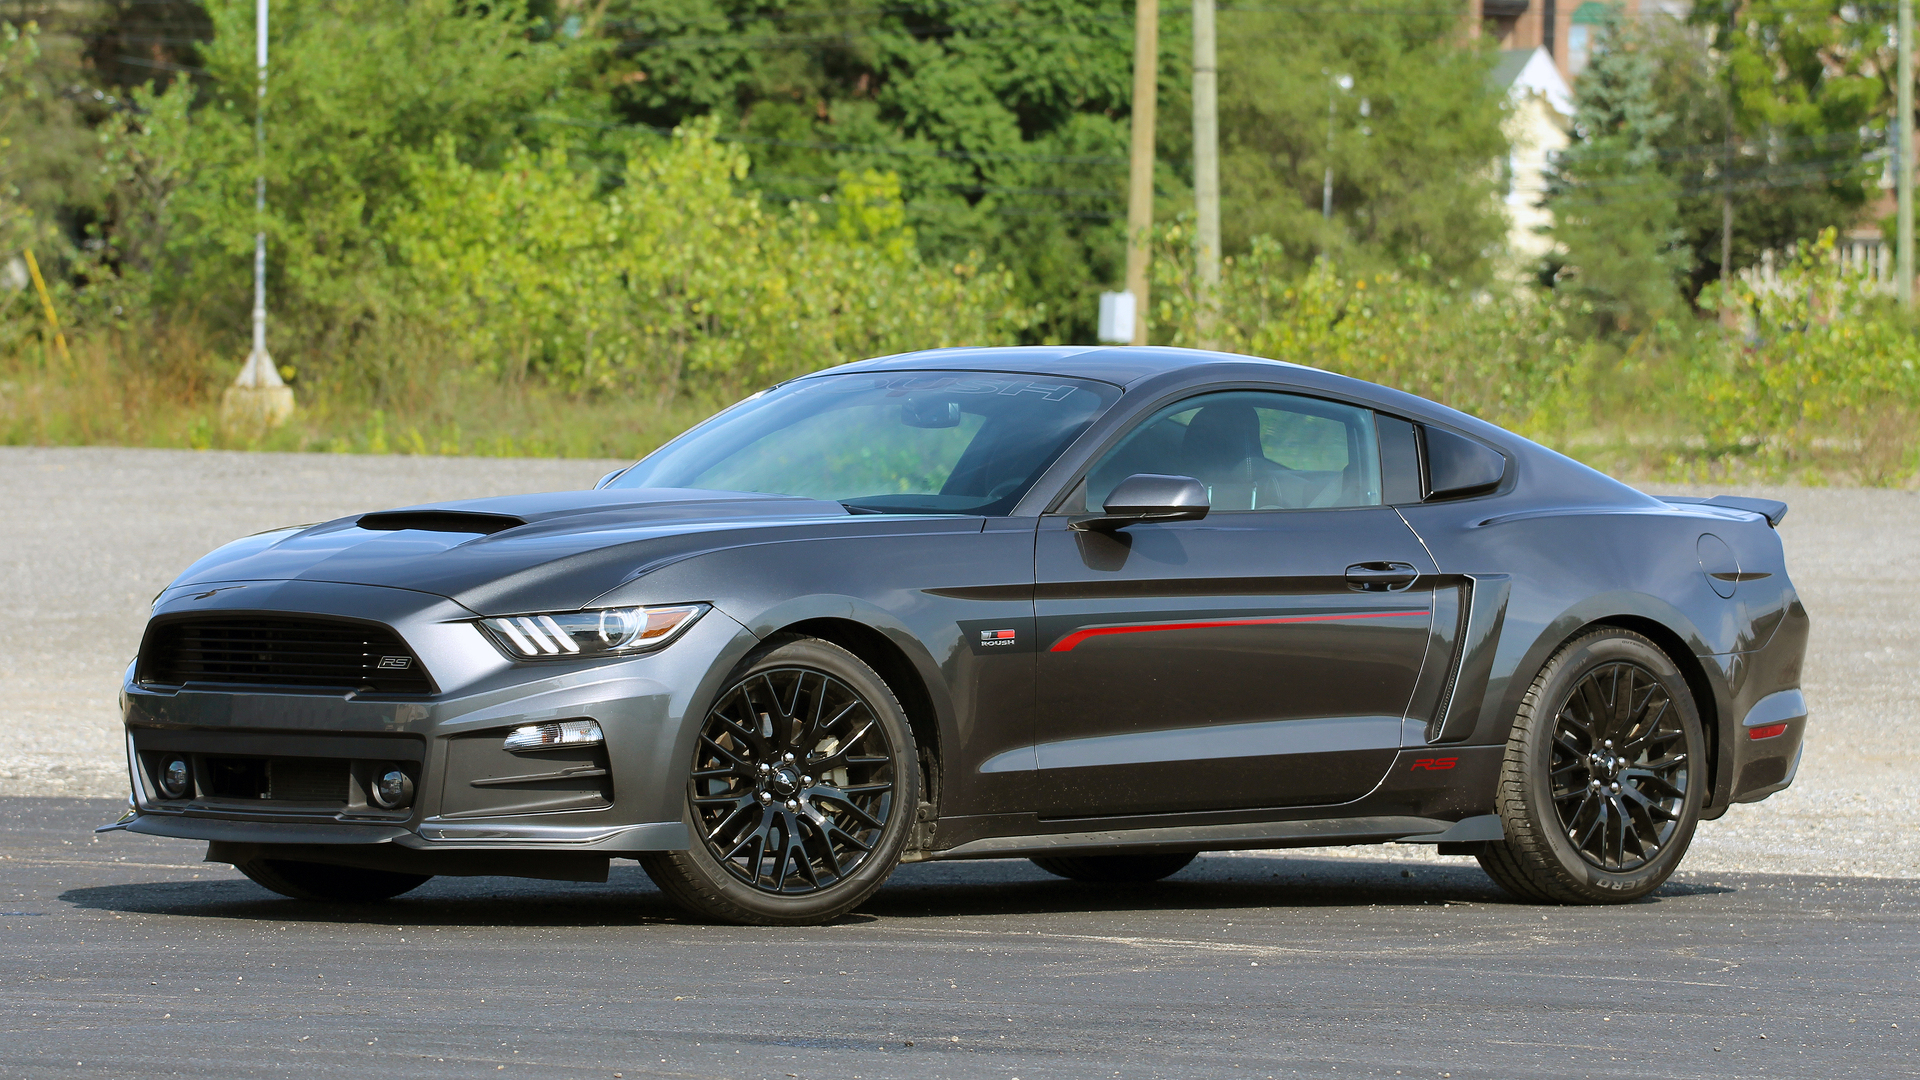 Ford Mustang Concept 2017 >> Review: 2017 Roush RS Mustang